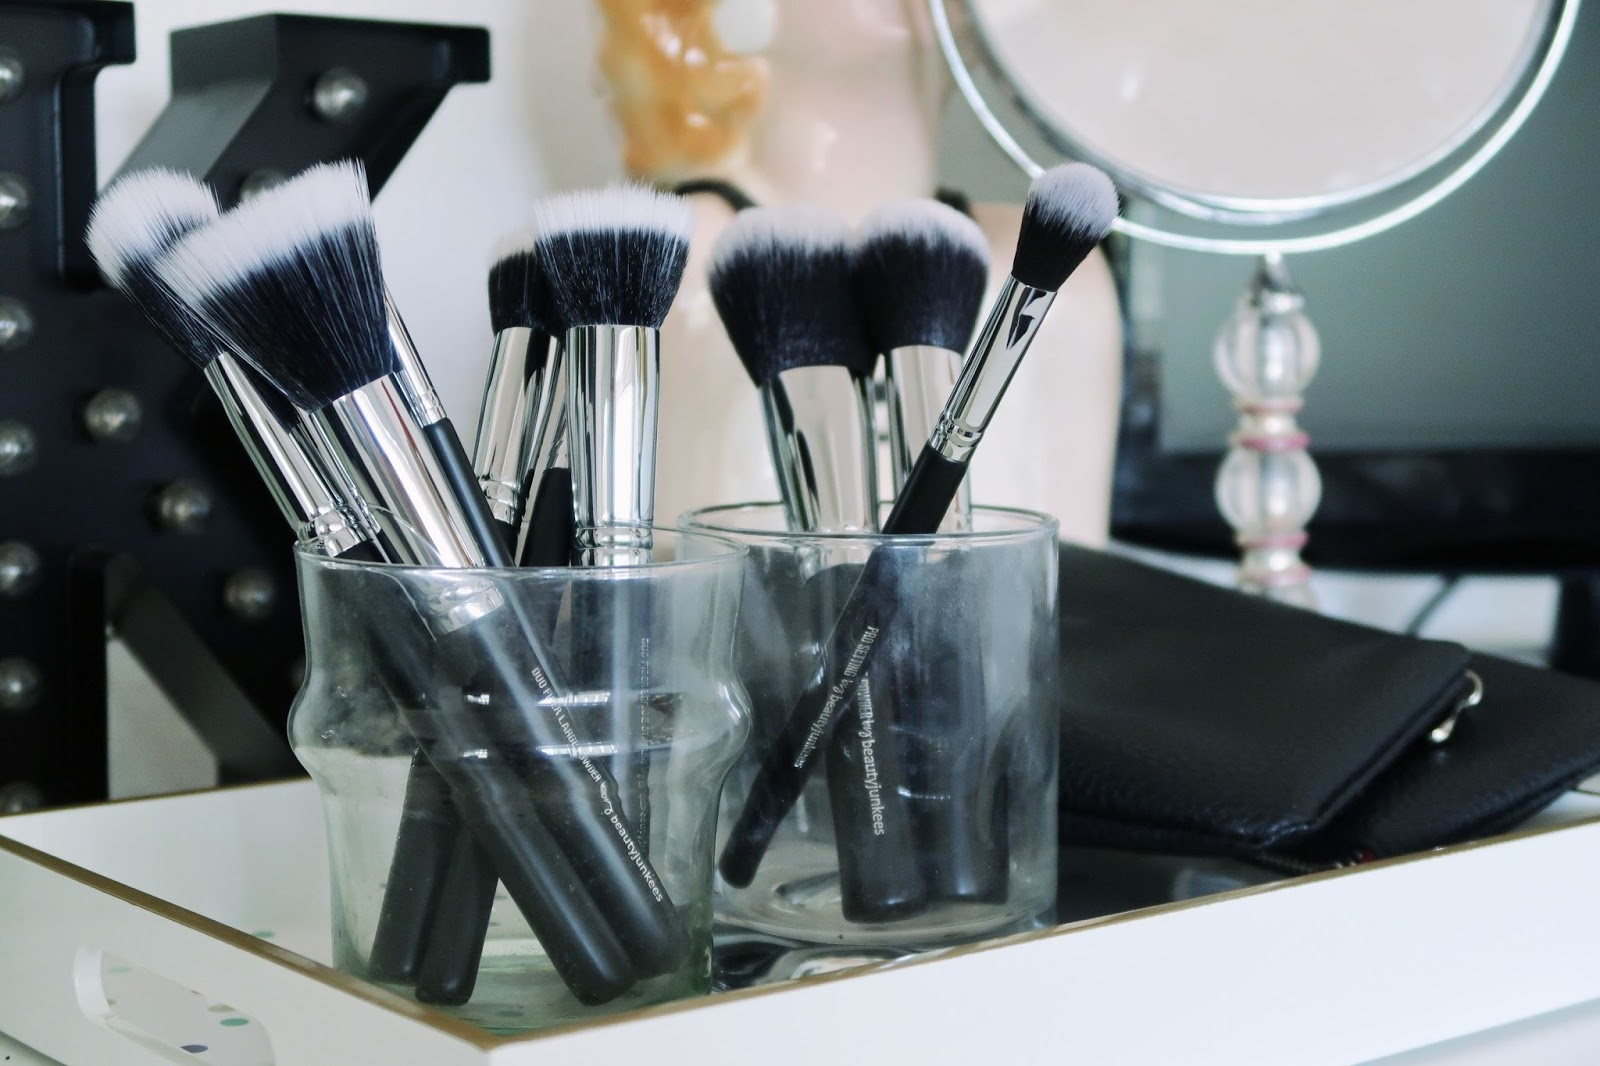 beauty junkees makeup brush review